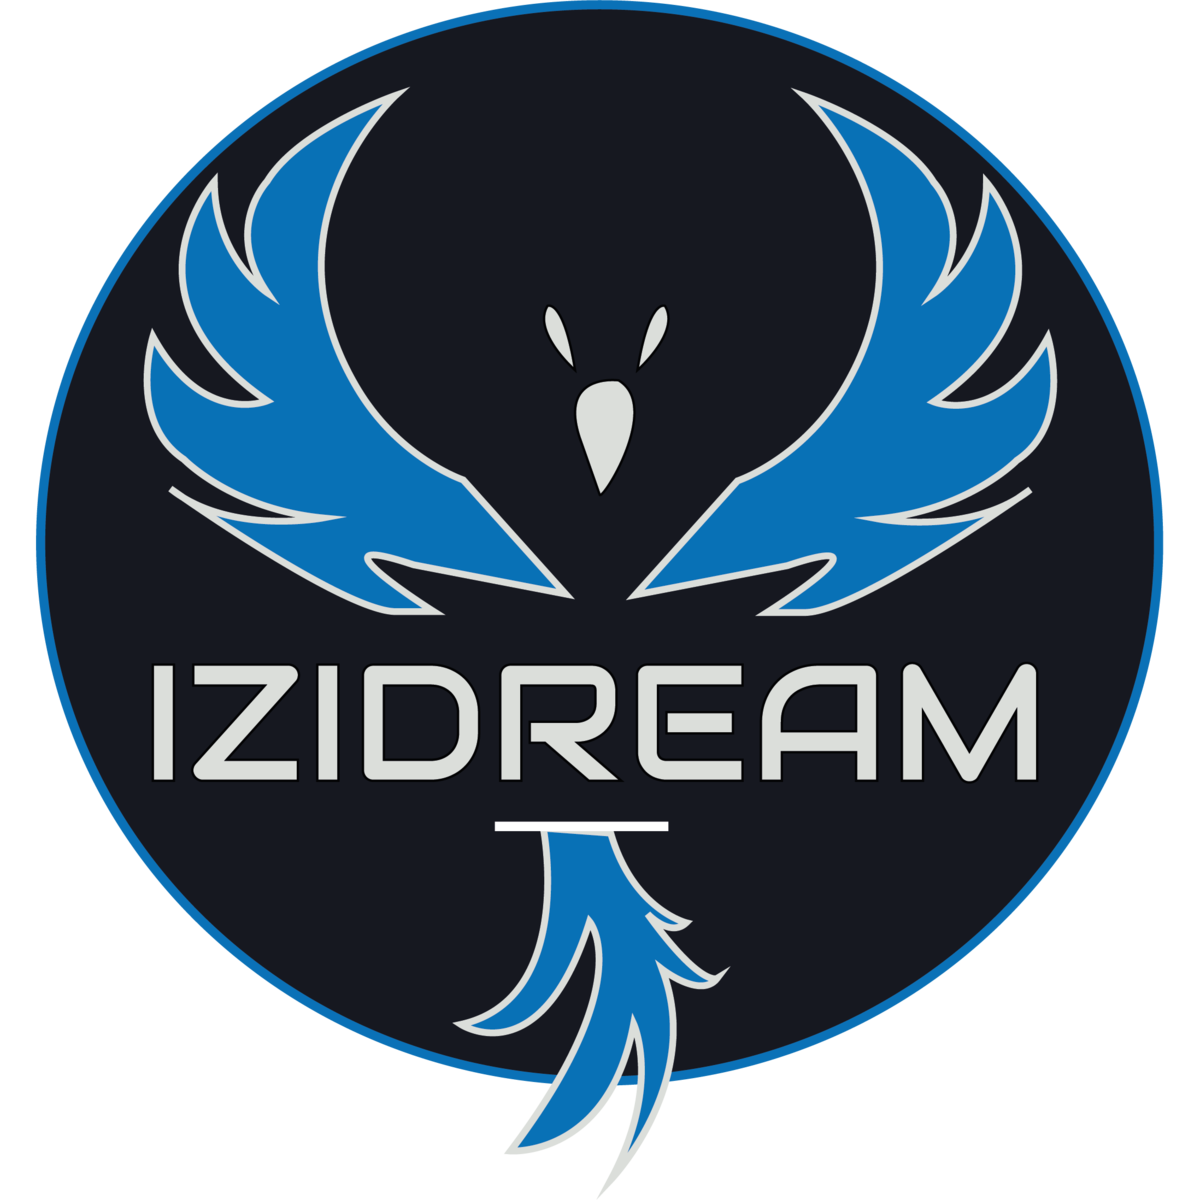 IziDream team logo